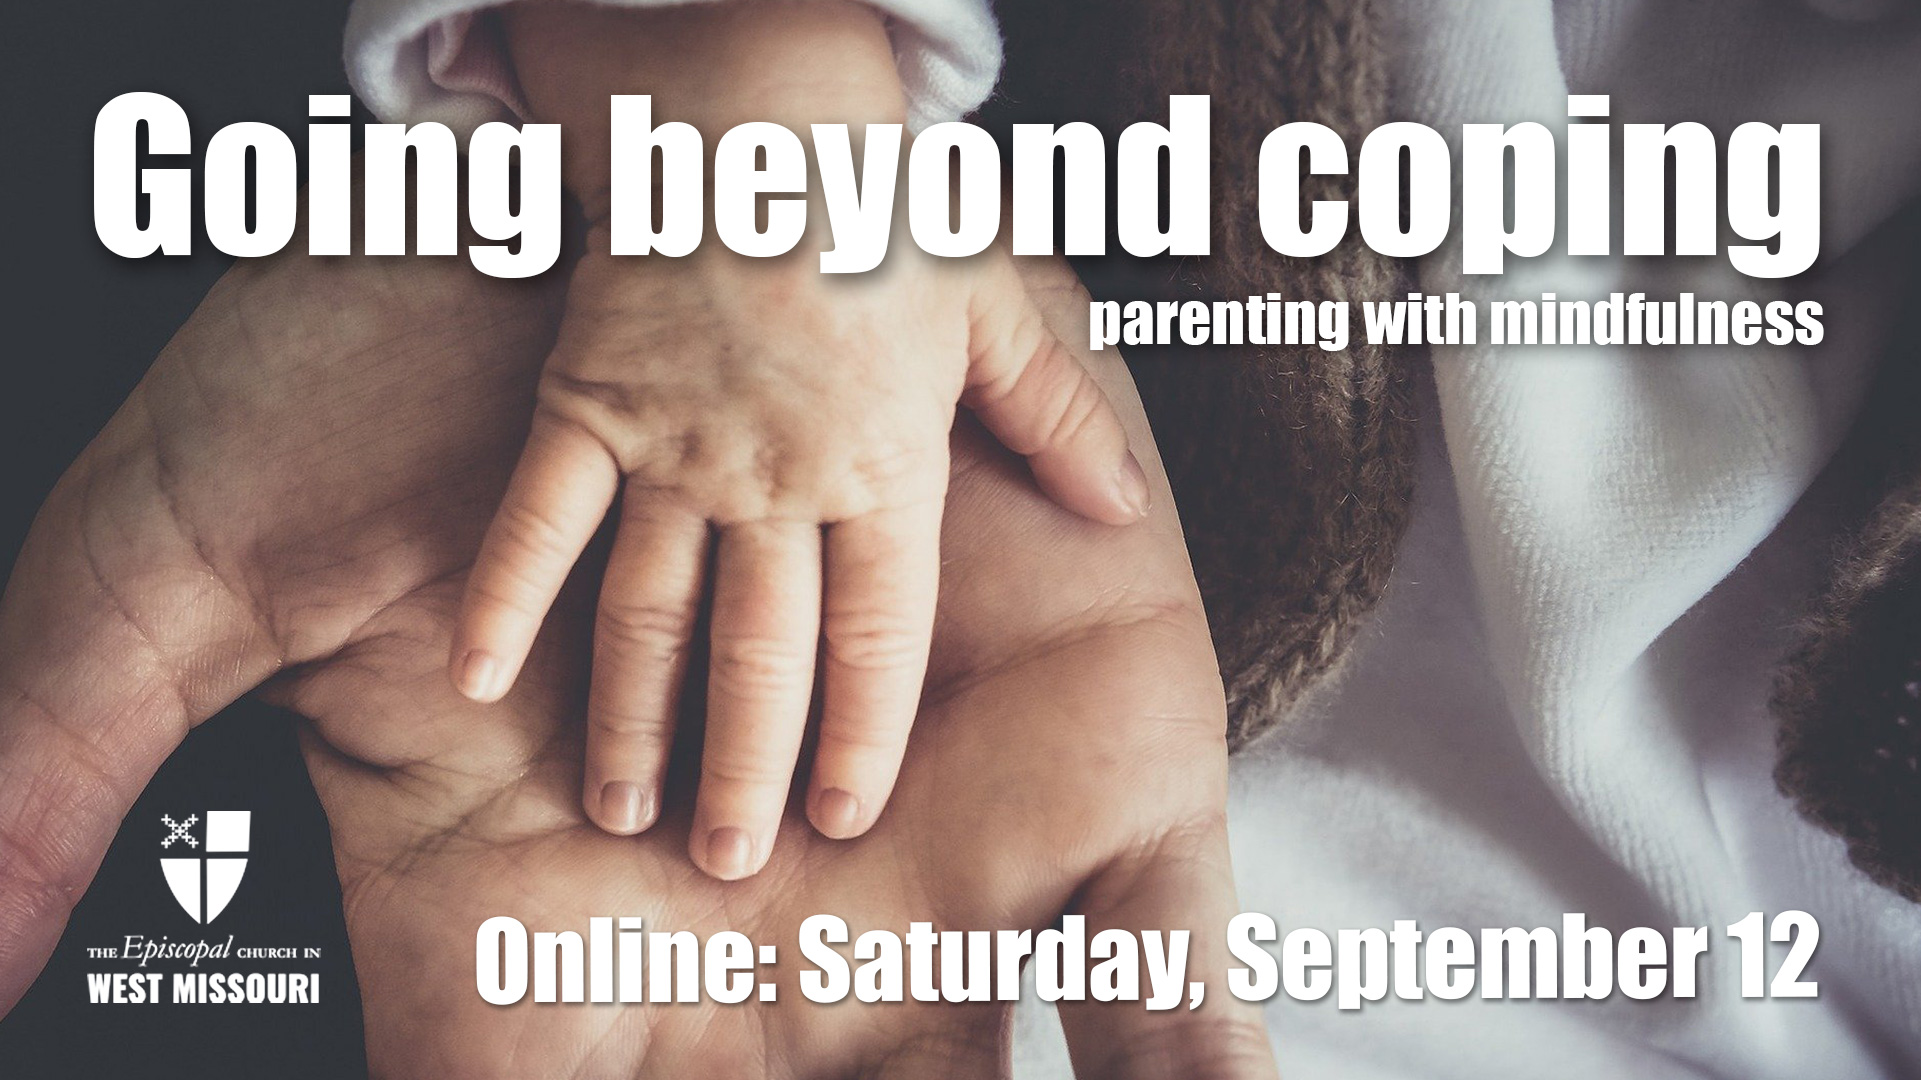 Going beyond coping, parenting with mindfulness